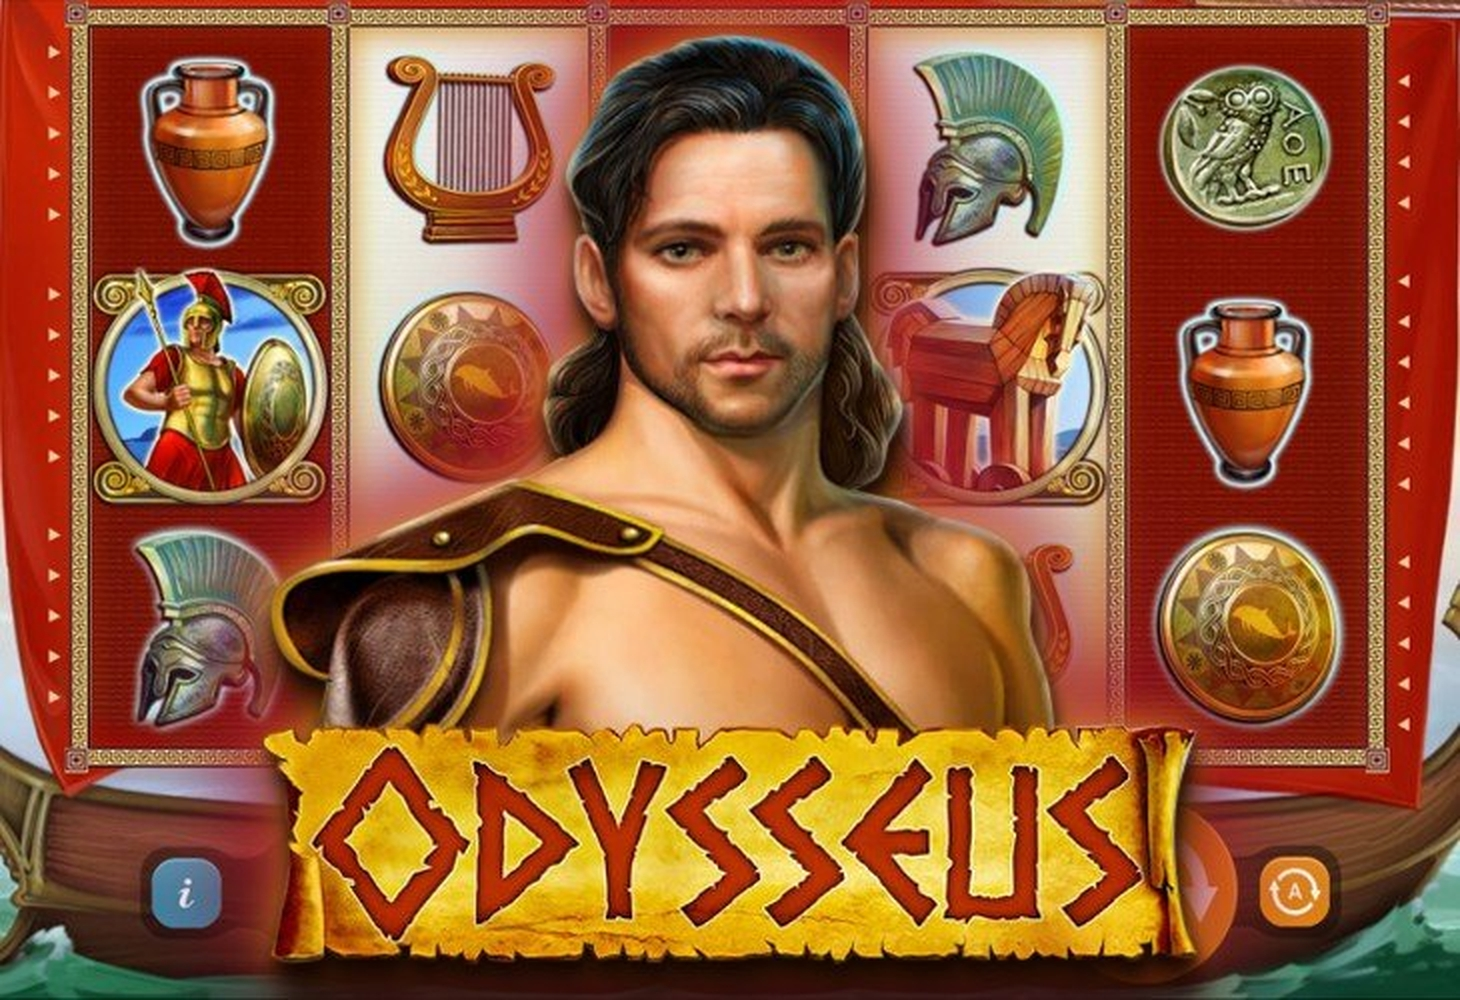 The Odysseus Online Slot Demo Game by Playson